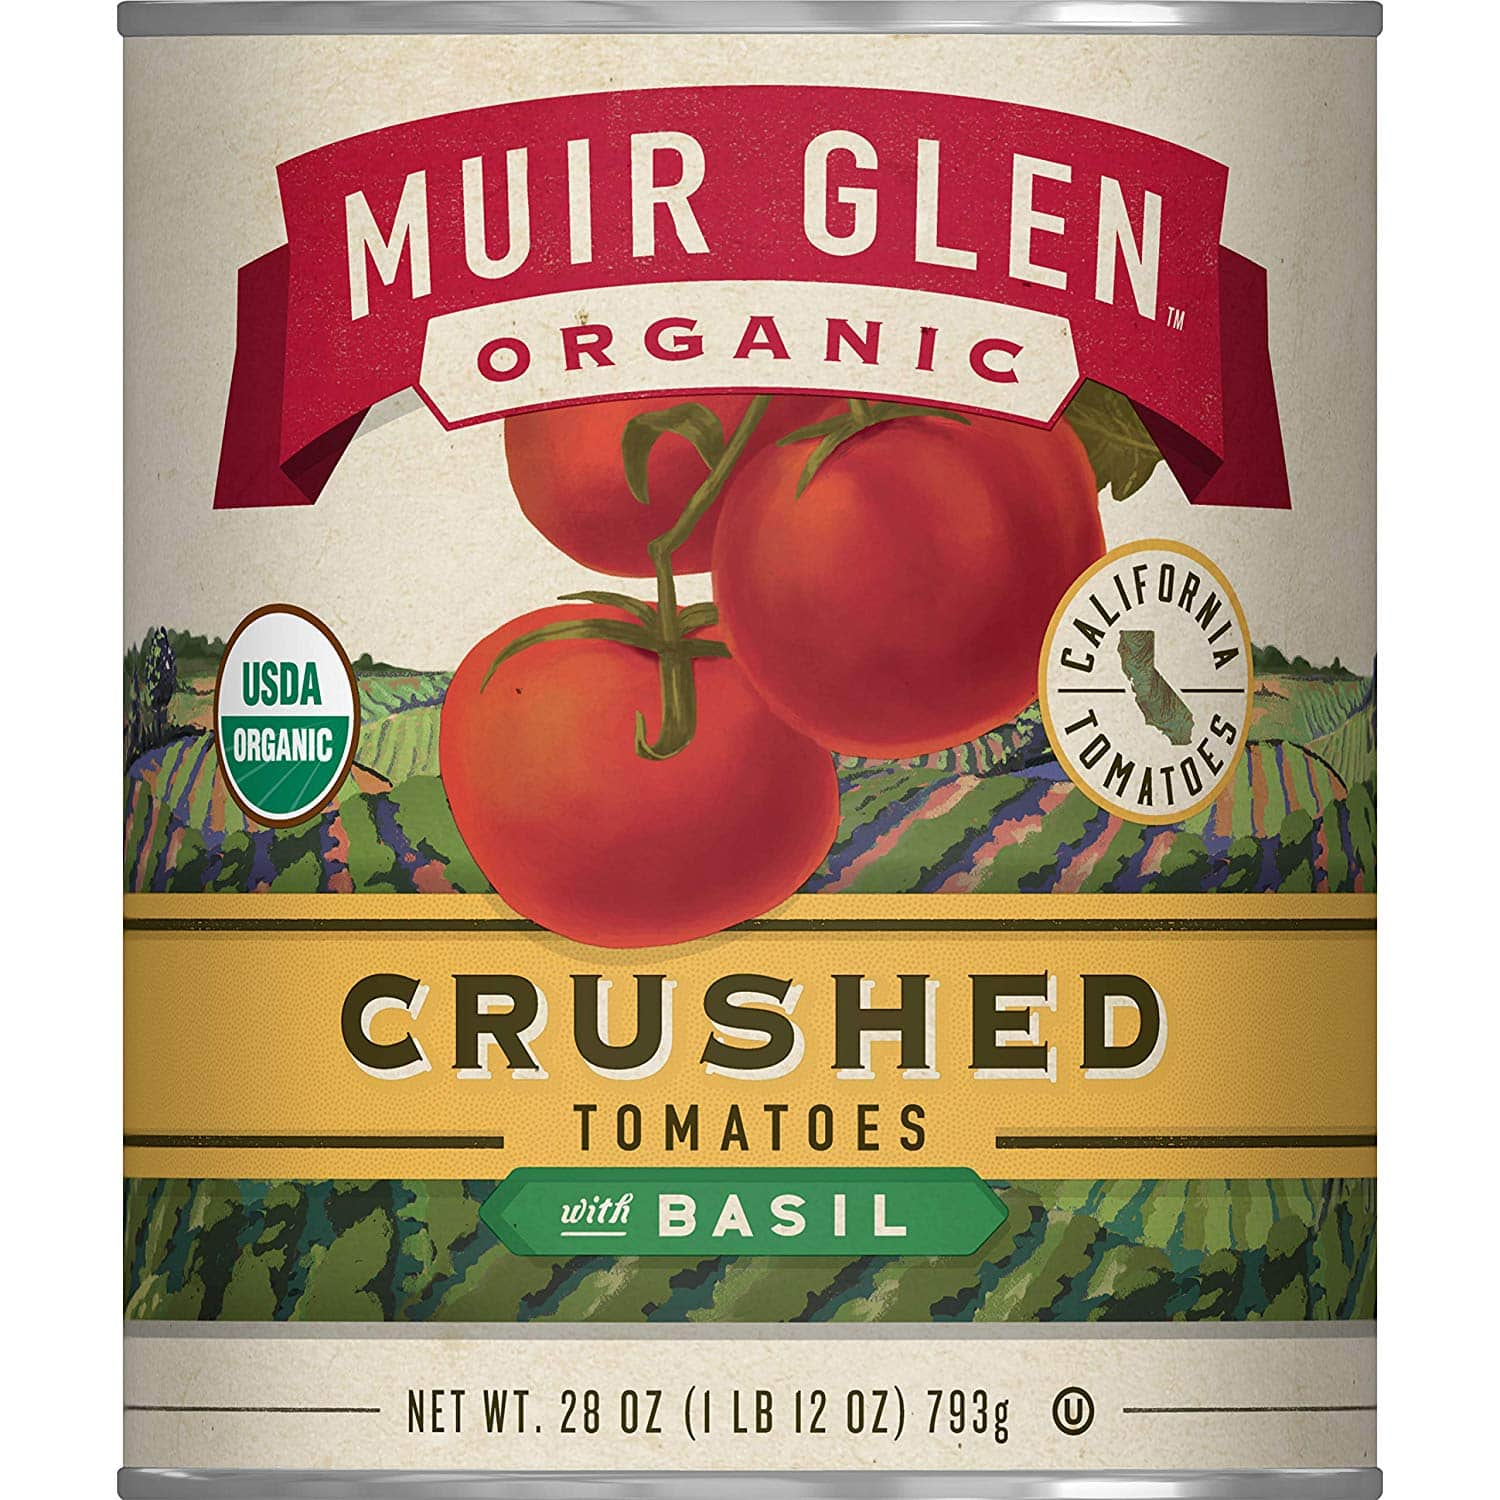 Muir Glen Crushed Tomatoes 28oz can (Pack of 12) - $17.16 after 15% S&S and $5.28 coupon